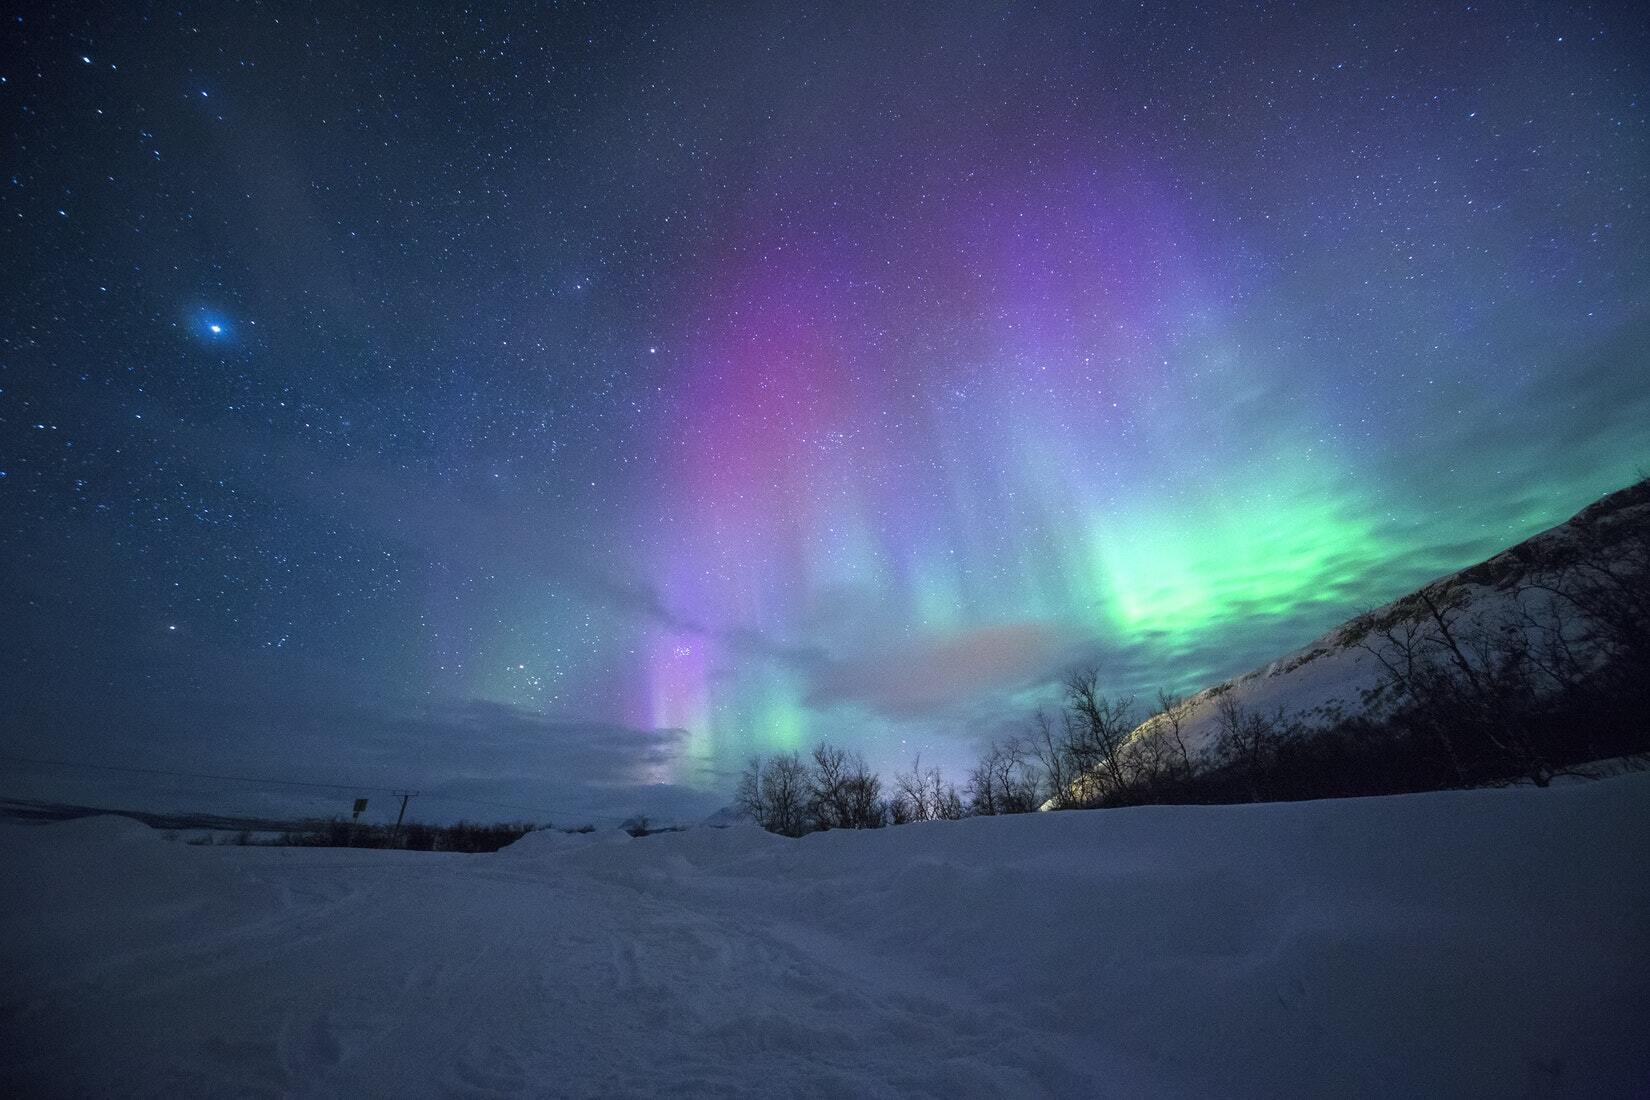 The northern lights might be visible in Chicago this weekend